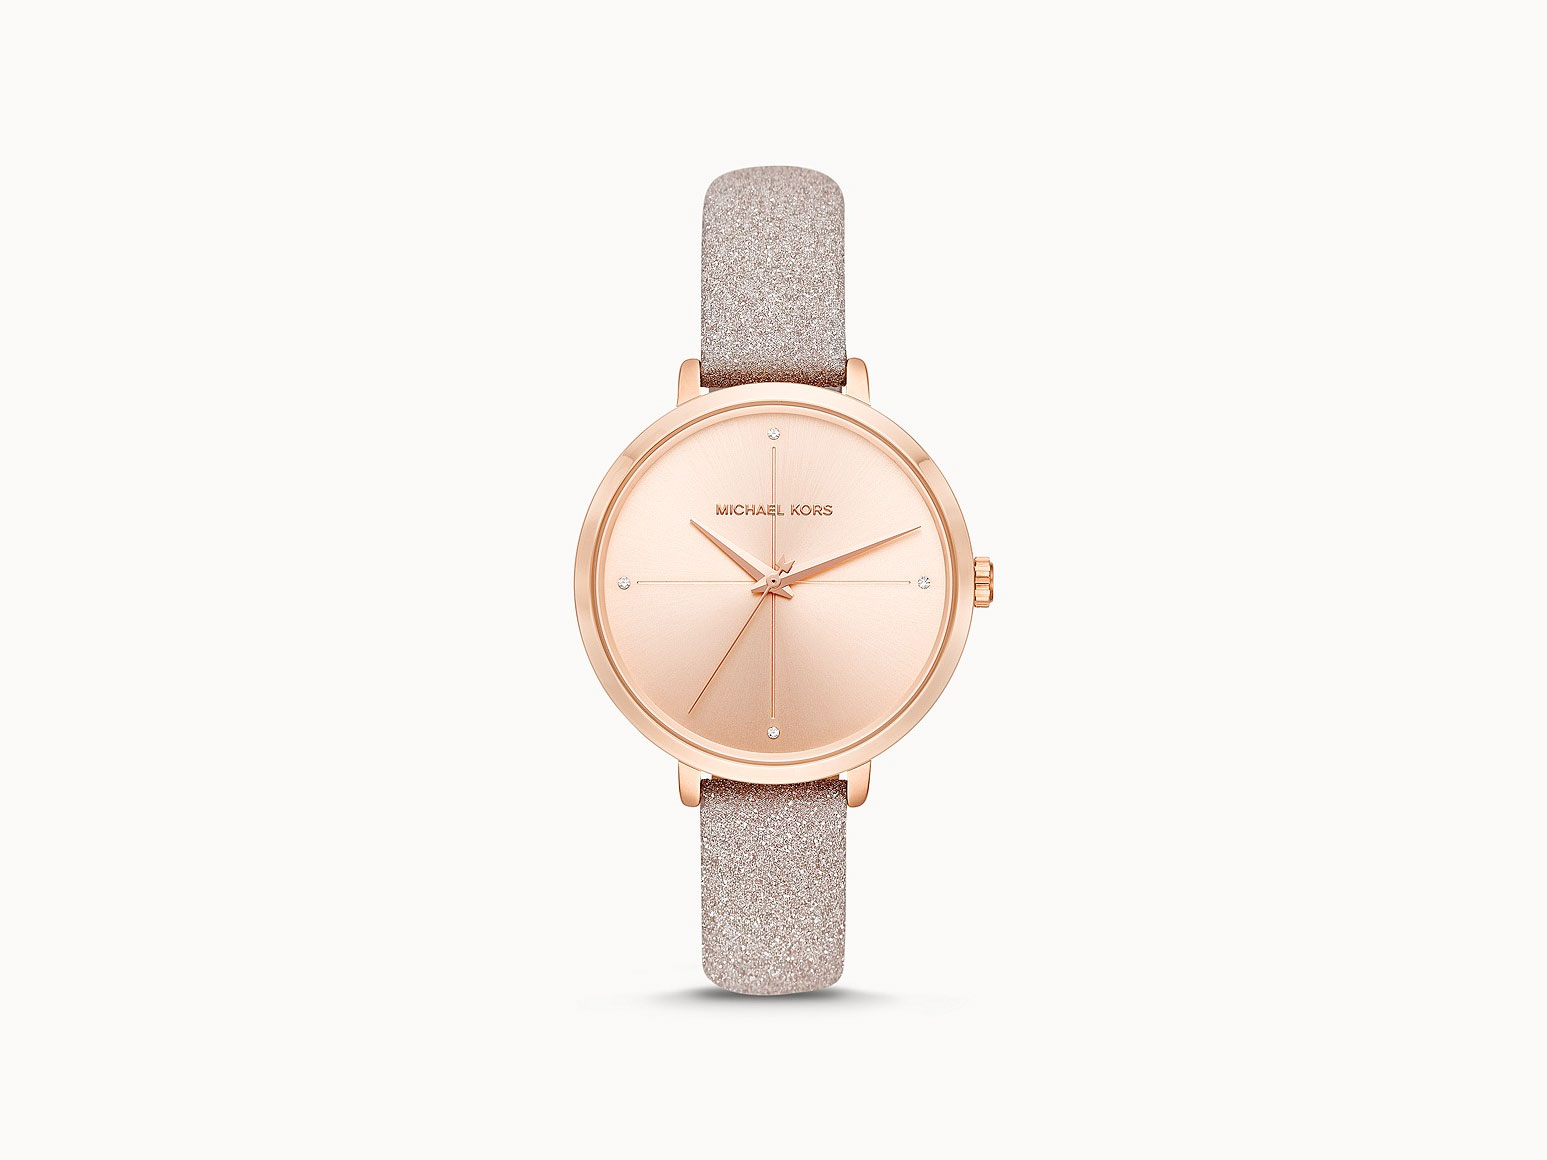 Watch Station:Michael Kors女裝手錶只賣$58.50